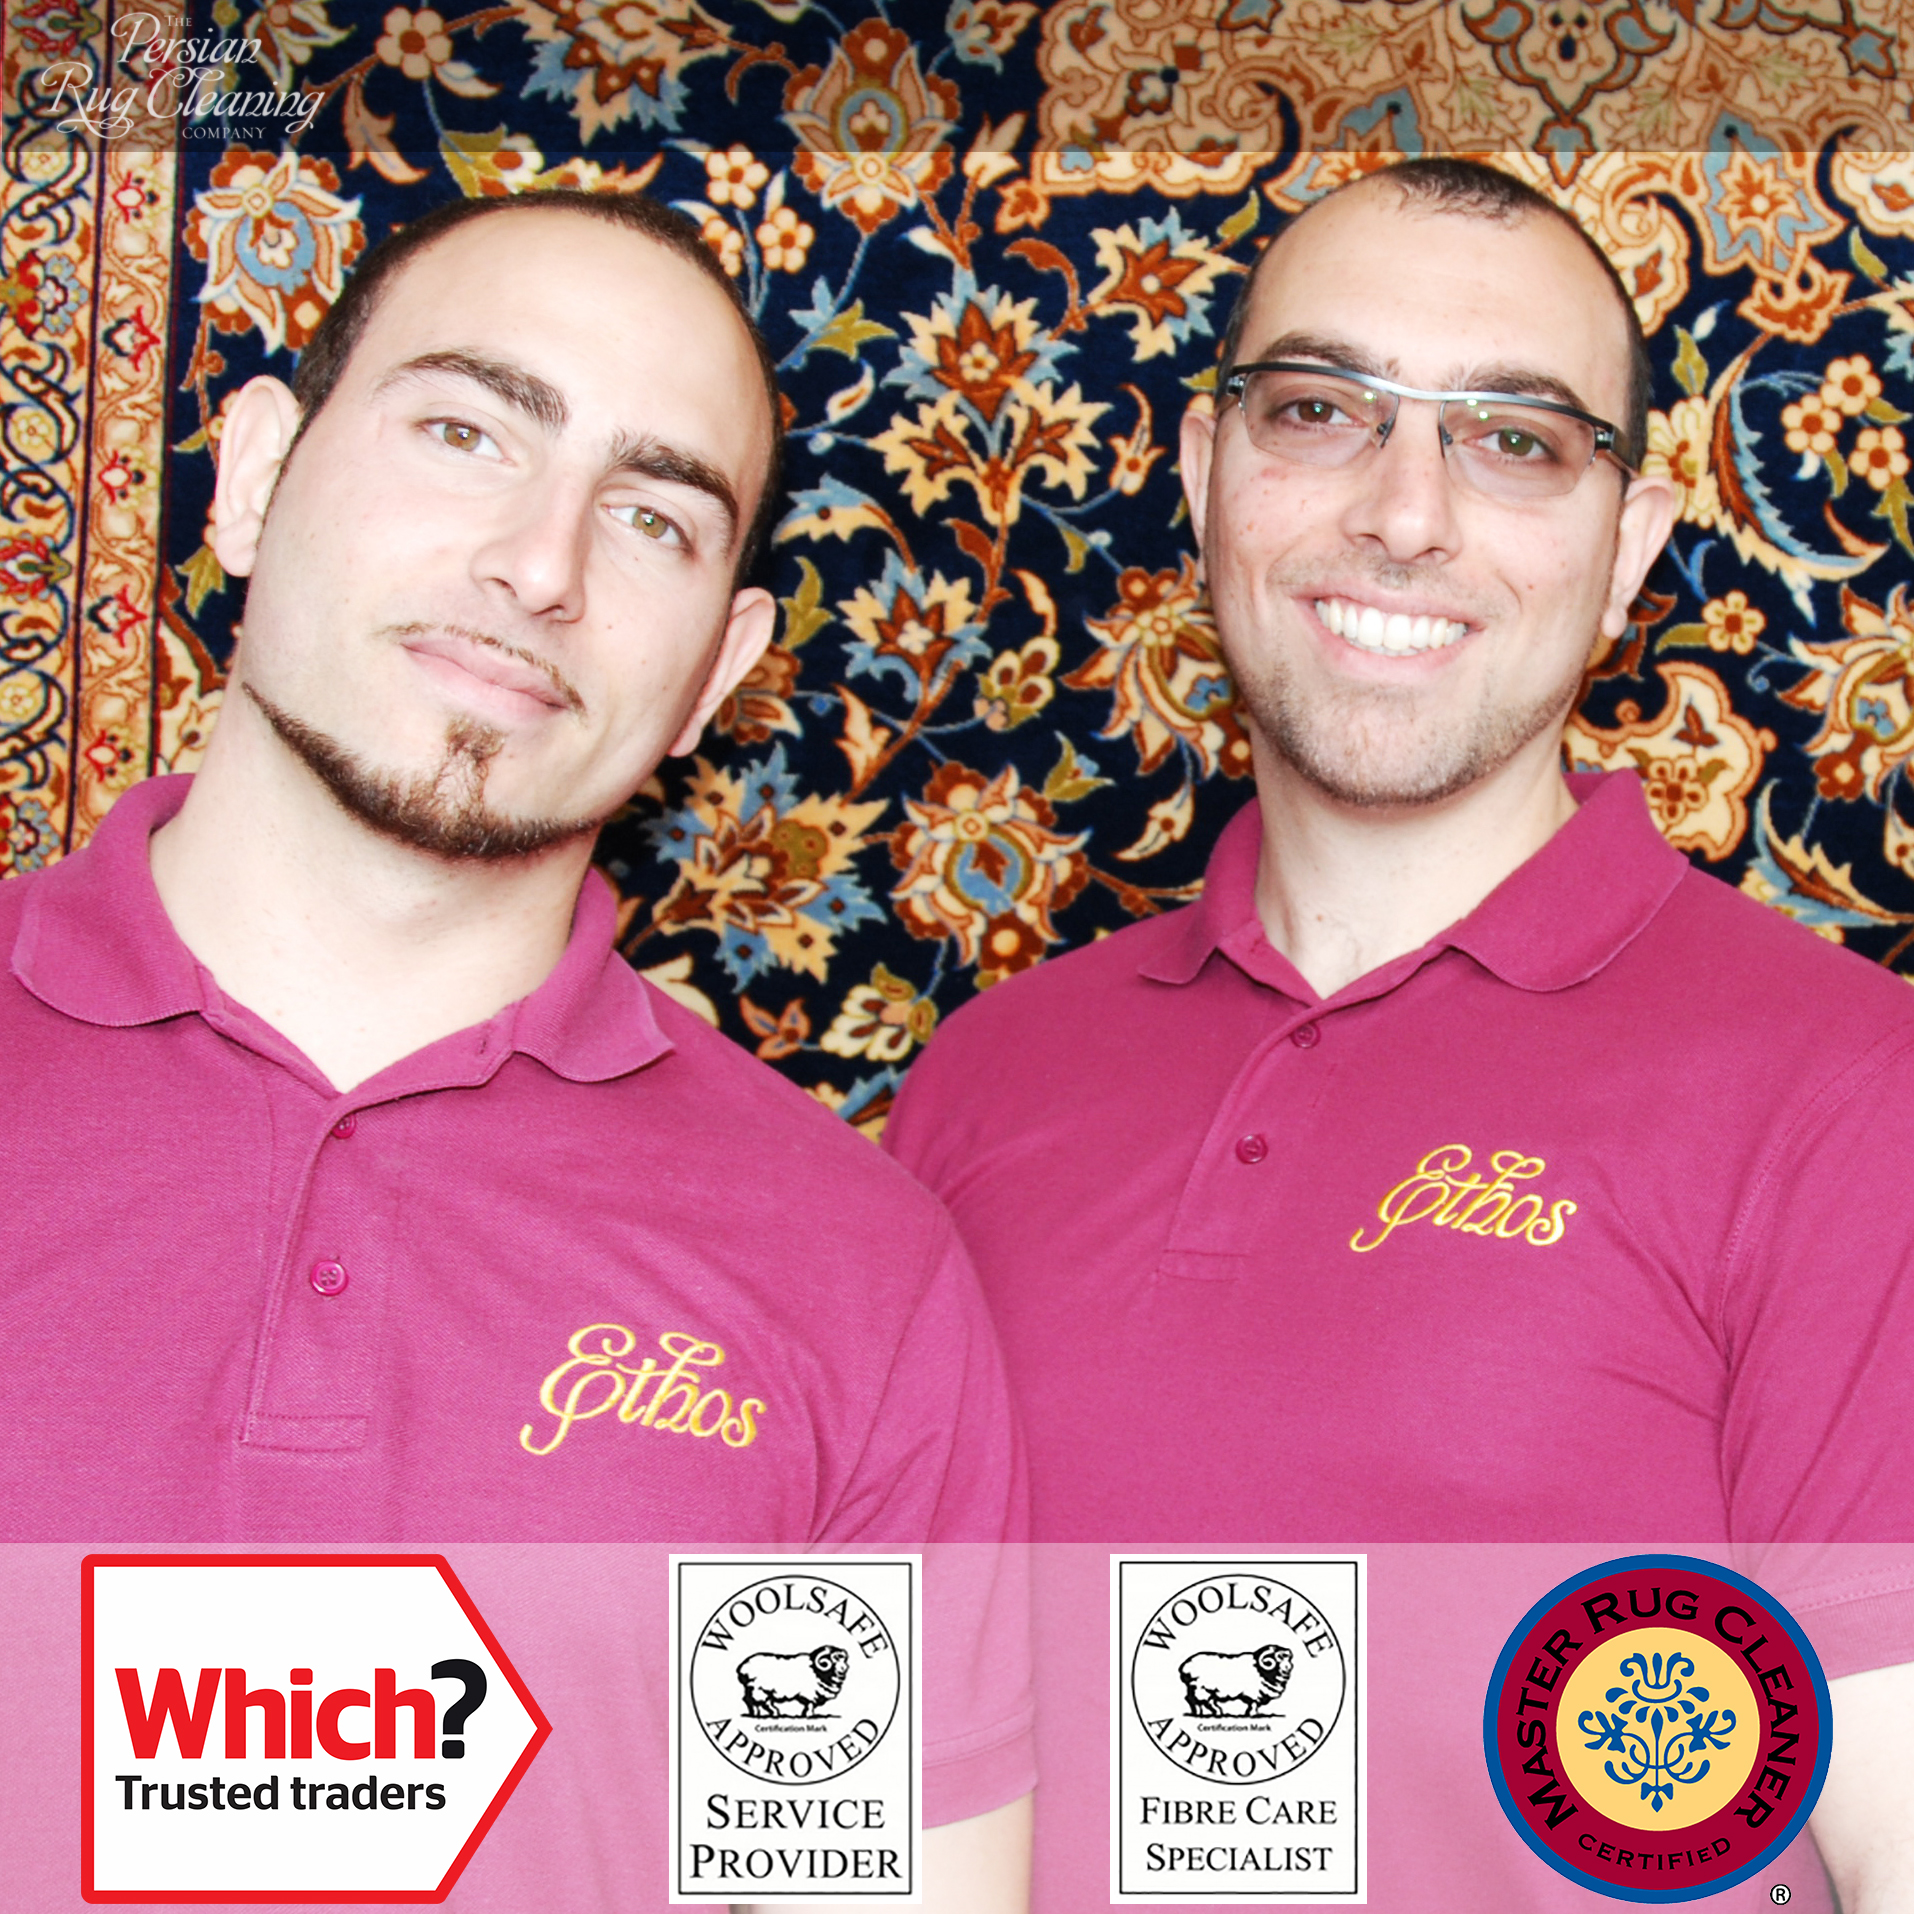 Ethos Carpet Care Ltd t/a The Persian Rug Cleaning Company